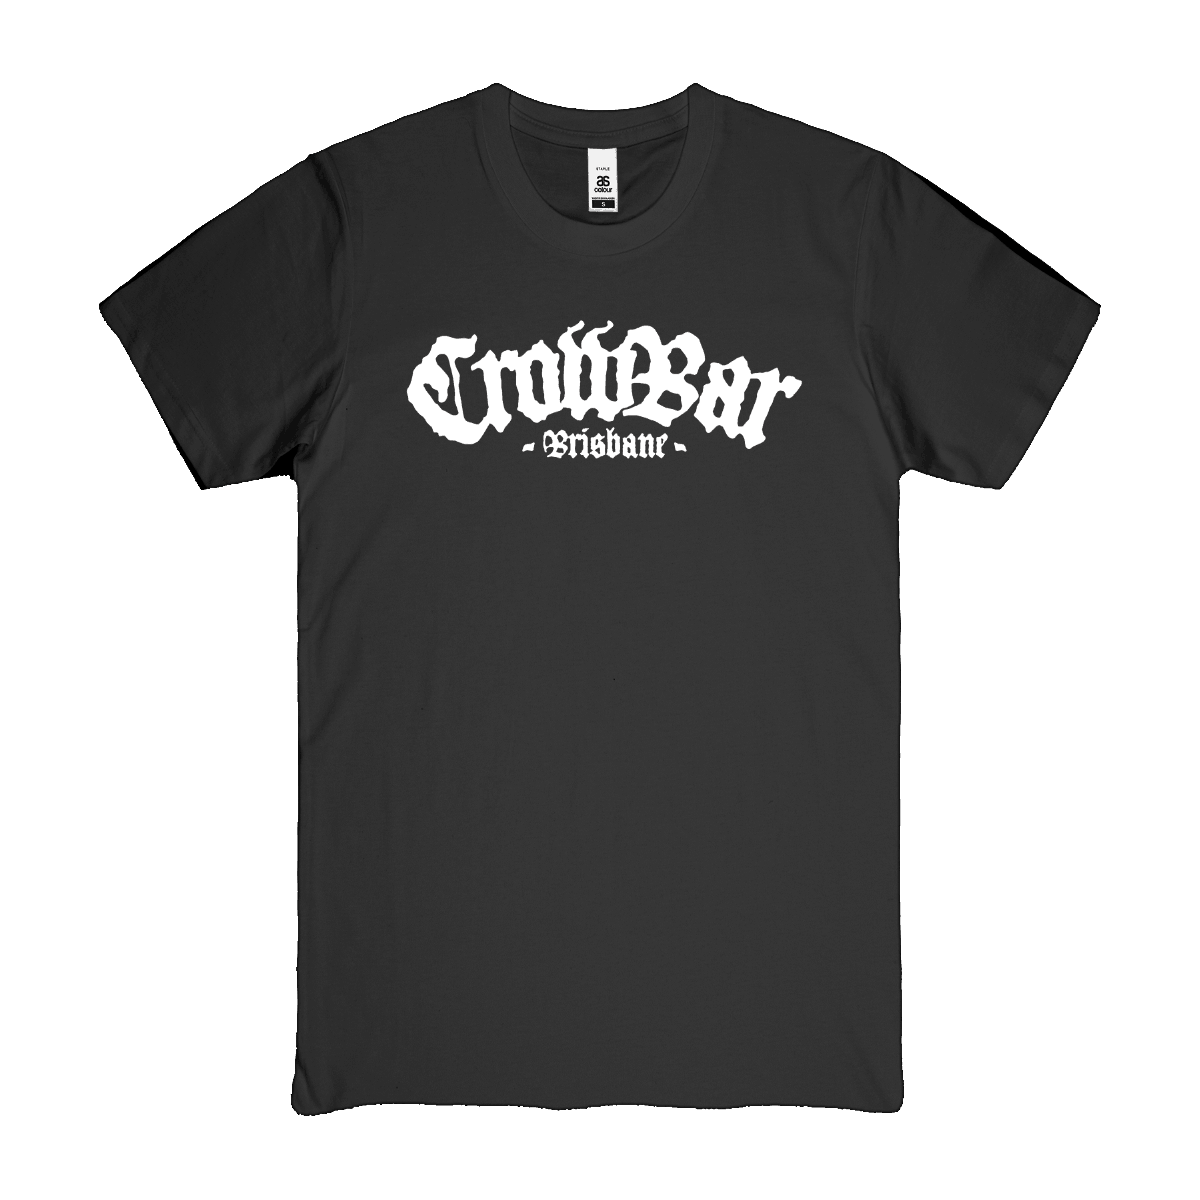 Crowbar Brisbane Logo T Shirt